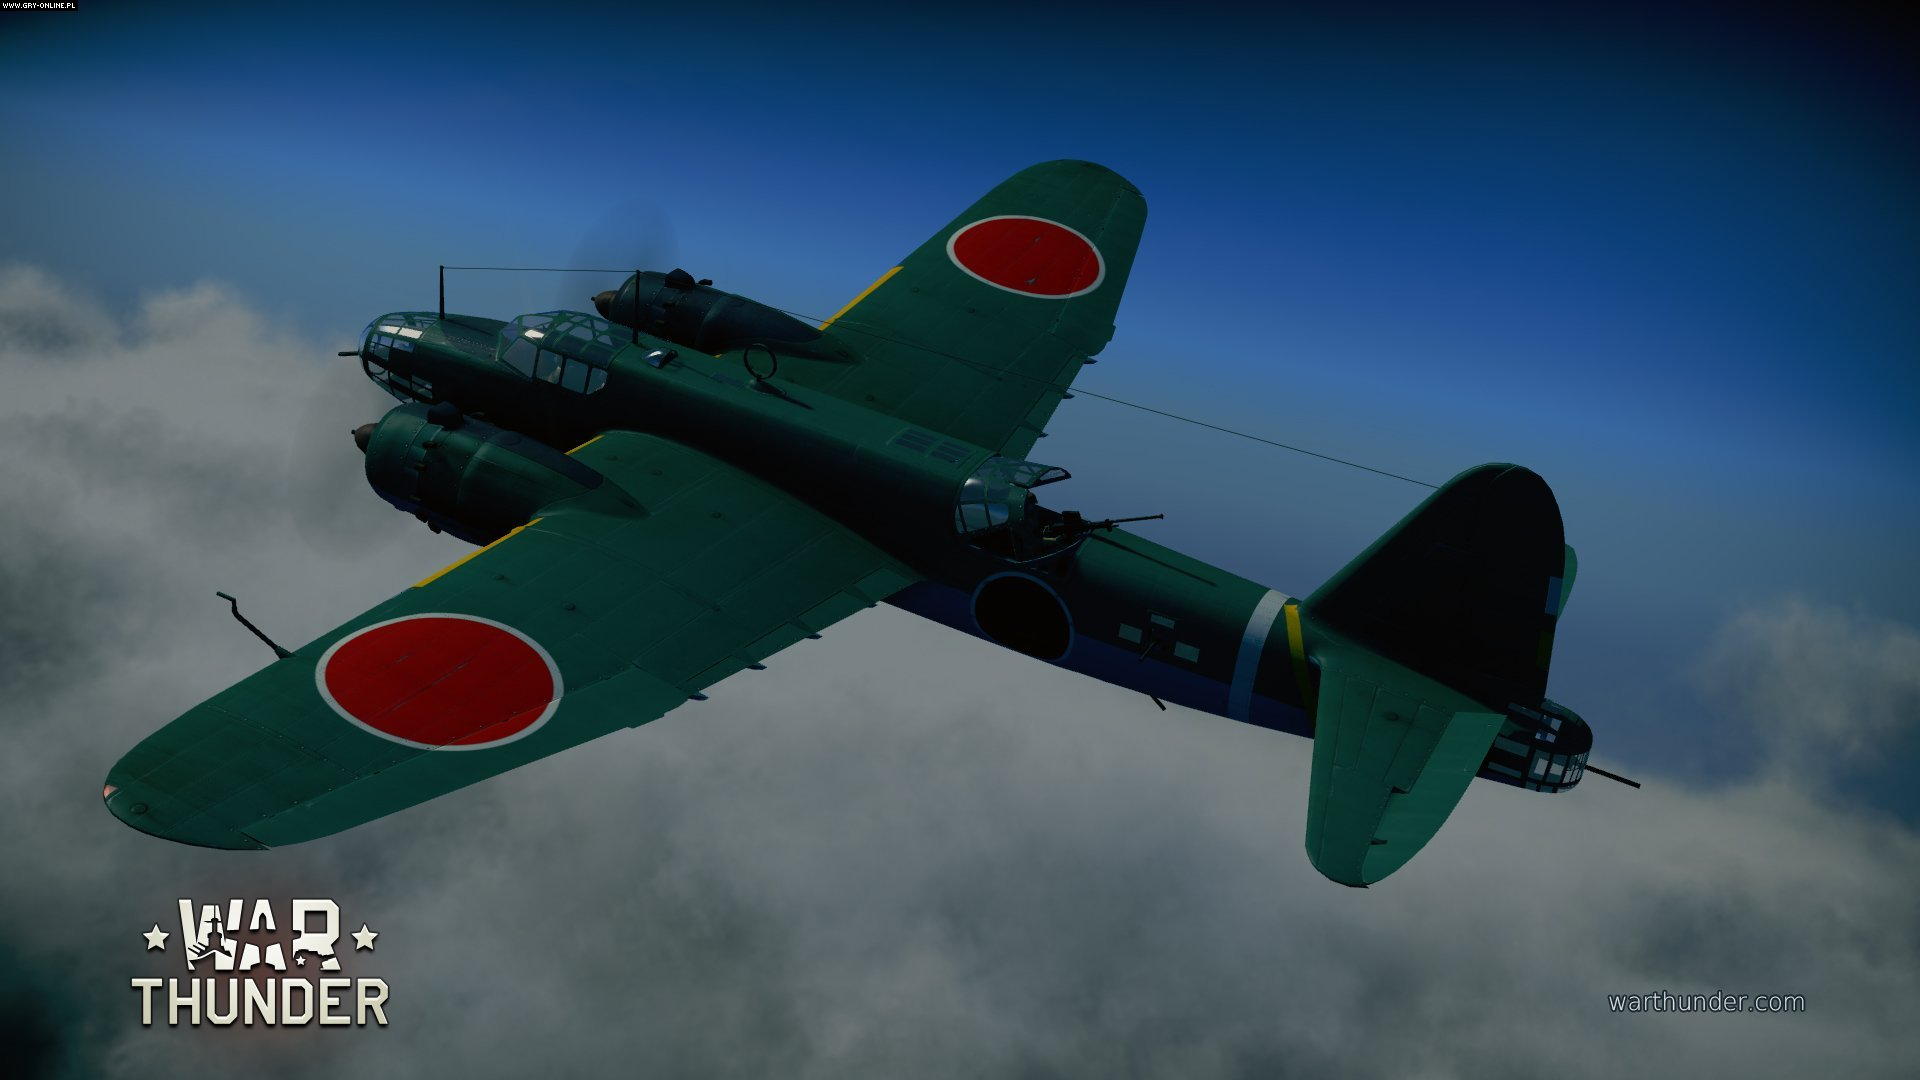 War Thunder PC, PS4, XONE Gry Screen 215/478, Gaijin Entertainment